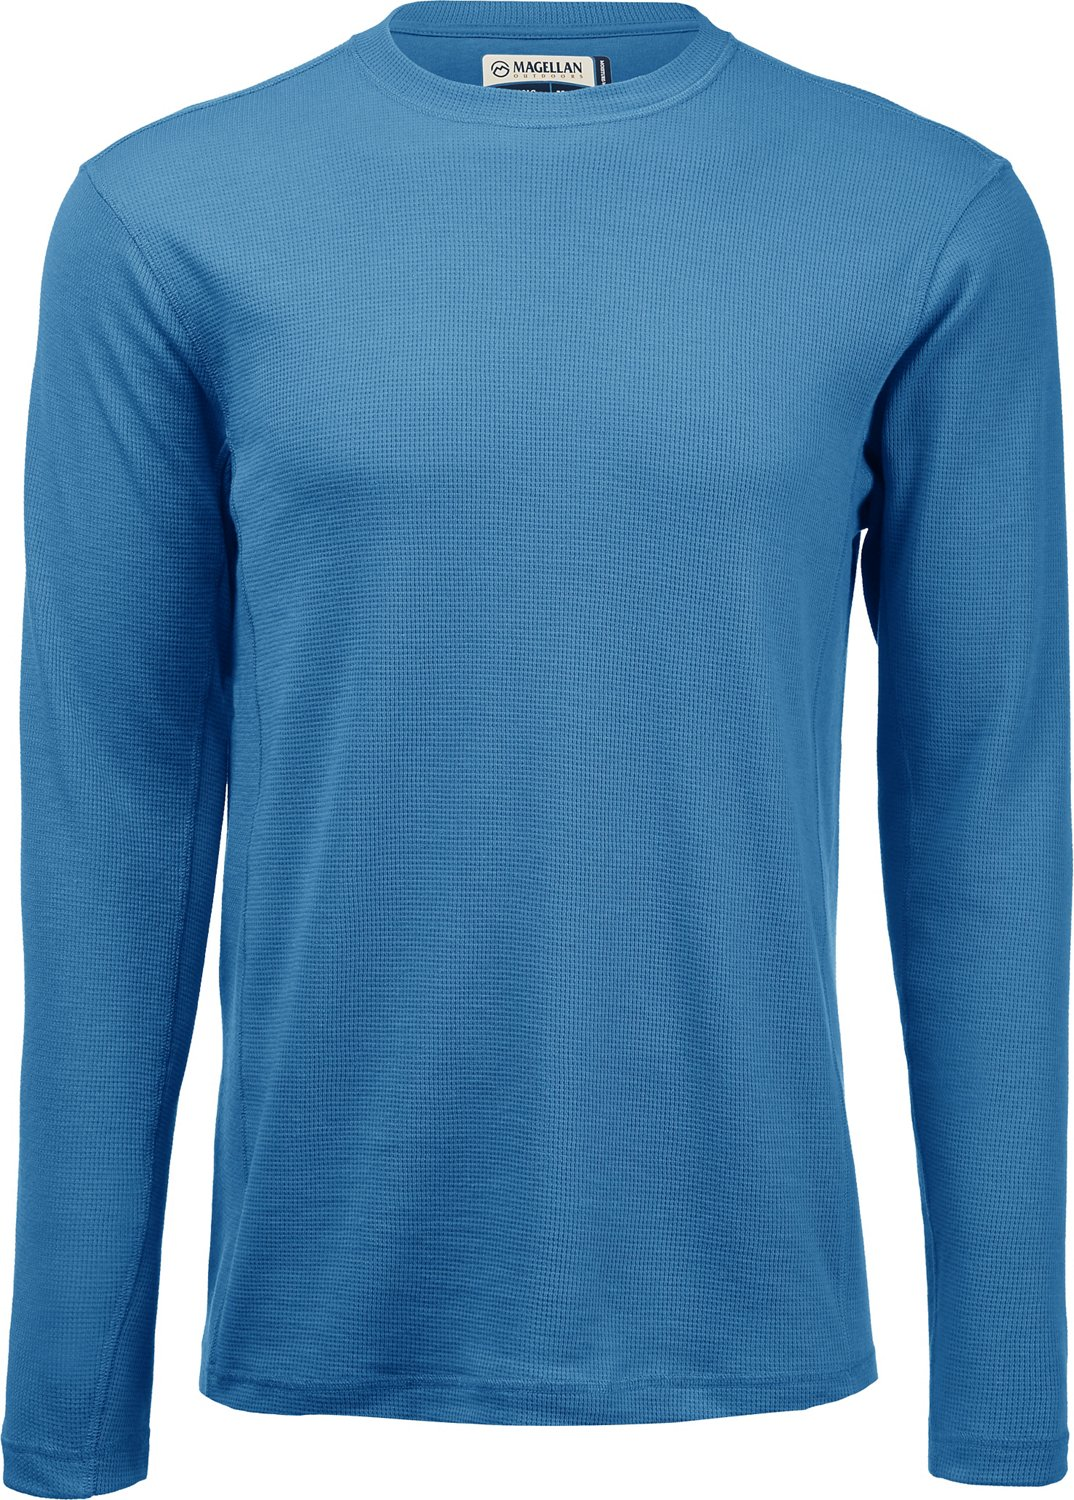 0a02616fed6e Display product reviews for Magellan Outdoors Men s Base Camp Thermal Long  Sleeve Crew Shirt